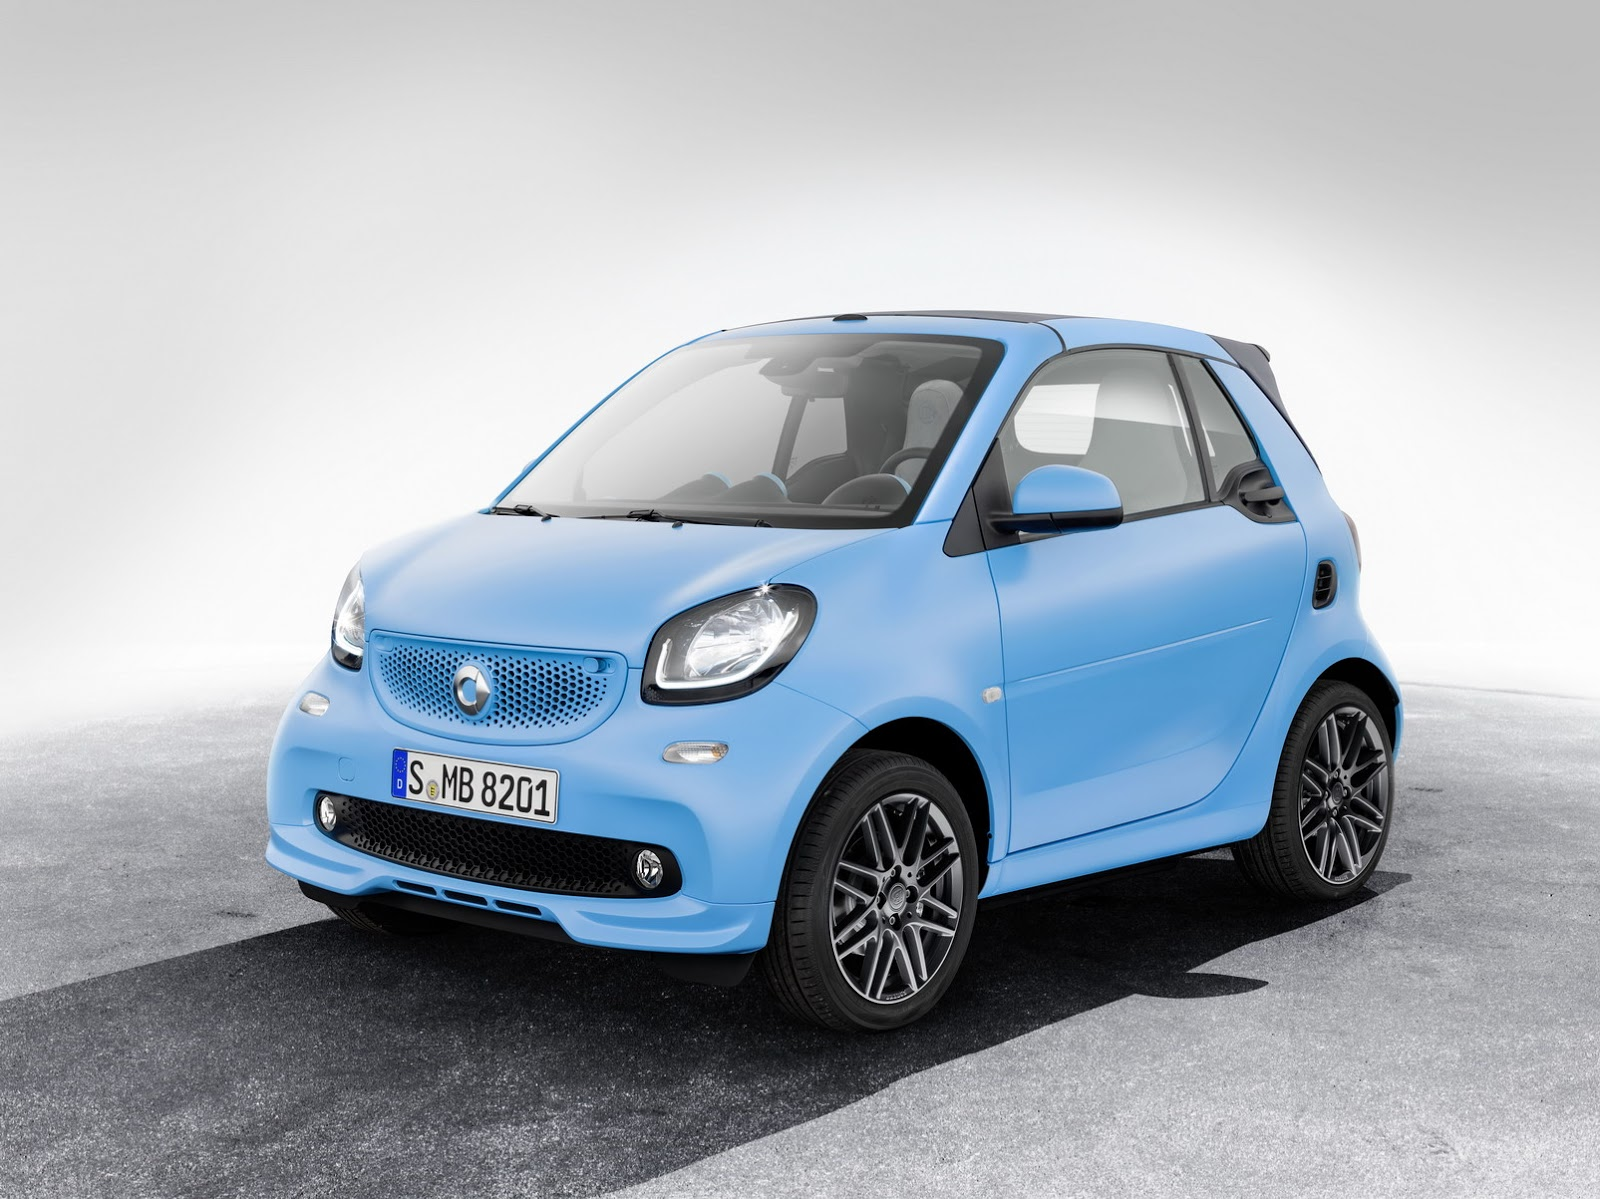 brabus packages up smart fortwo forfour still no performance versions. Black Bedroom Furniture Sets. Home Design Ideas